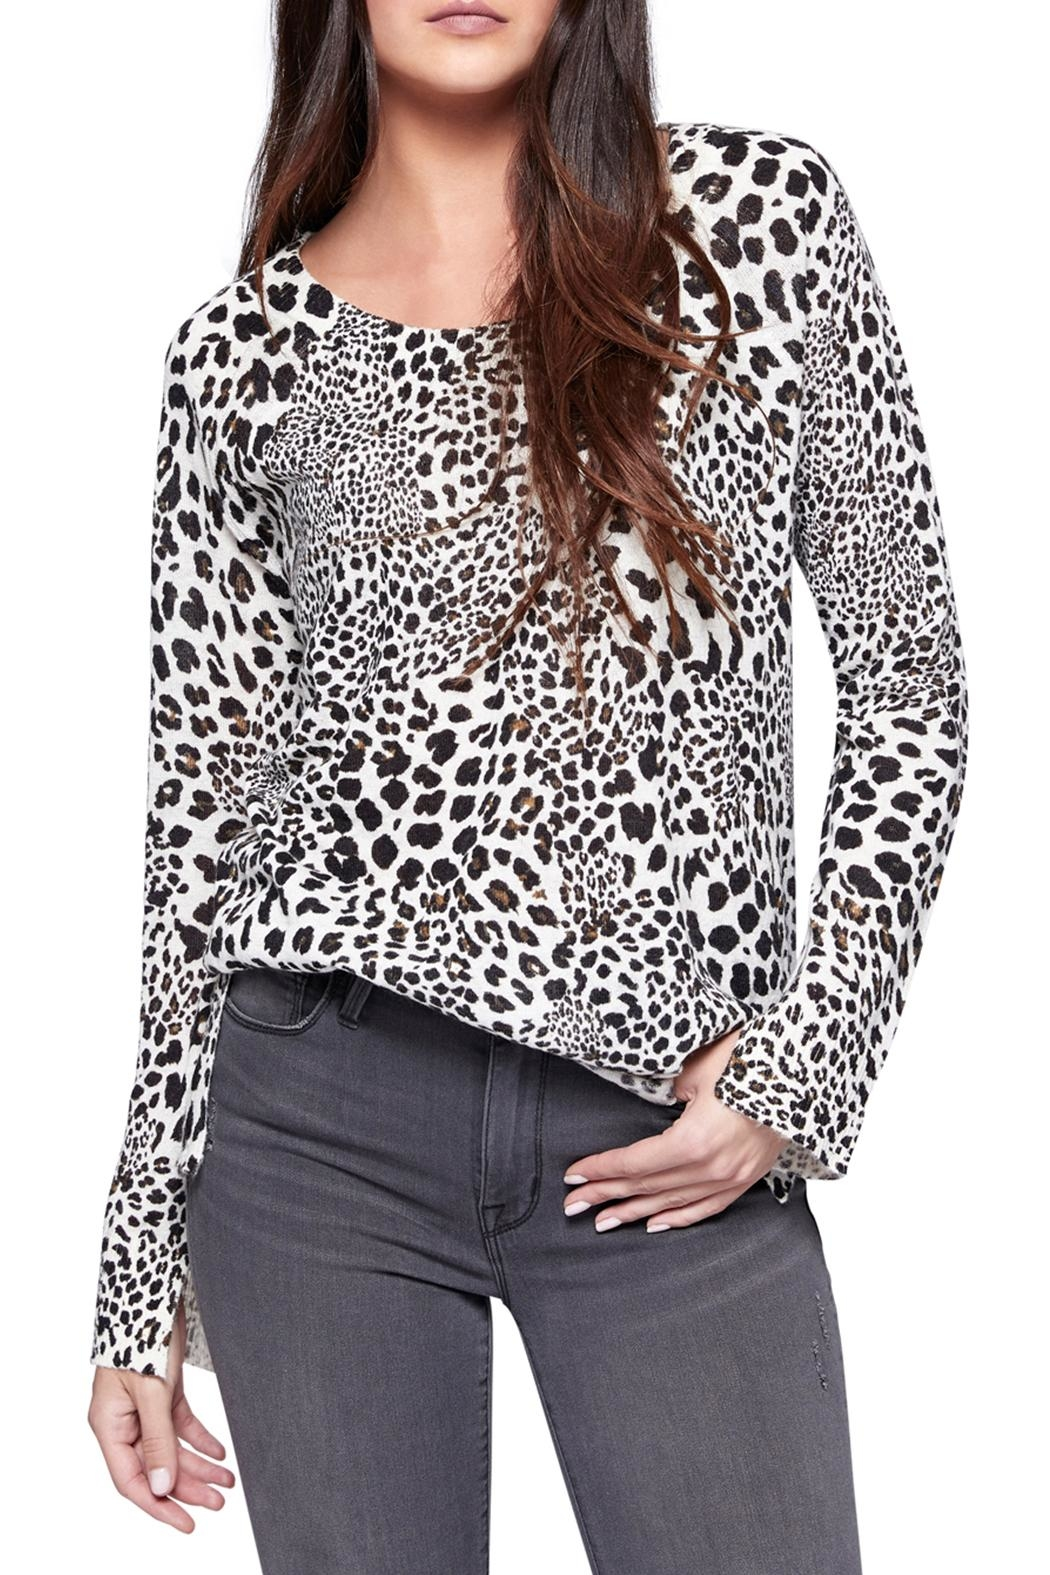 Sanctuary Leopard Crew Sweater - Front Cropped Image